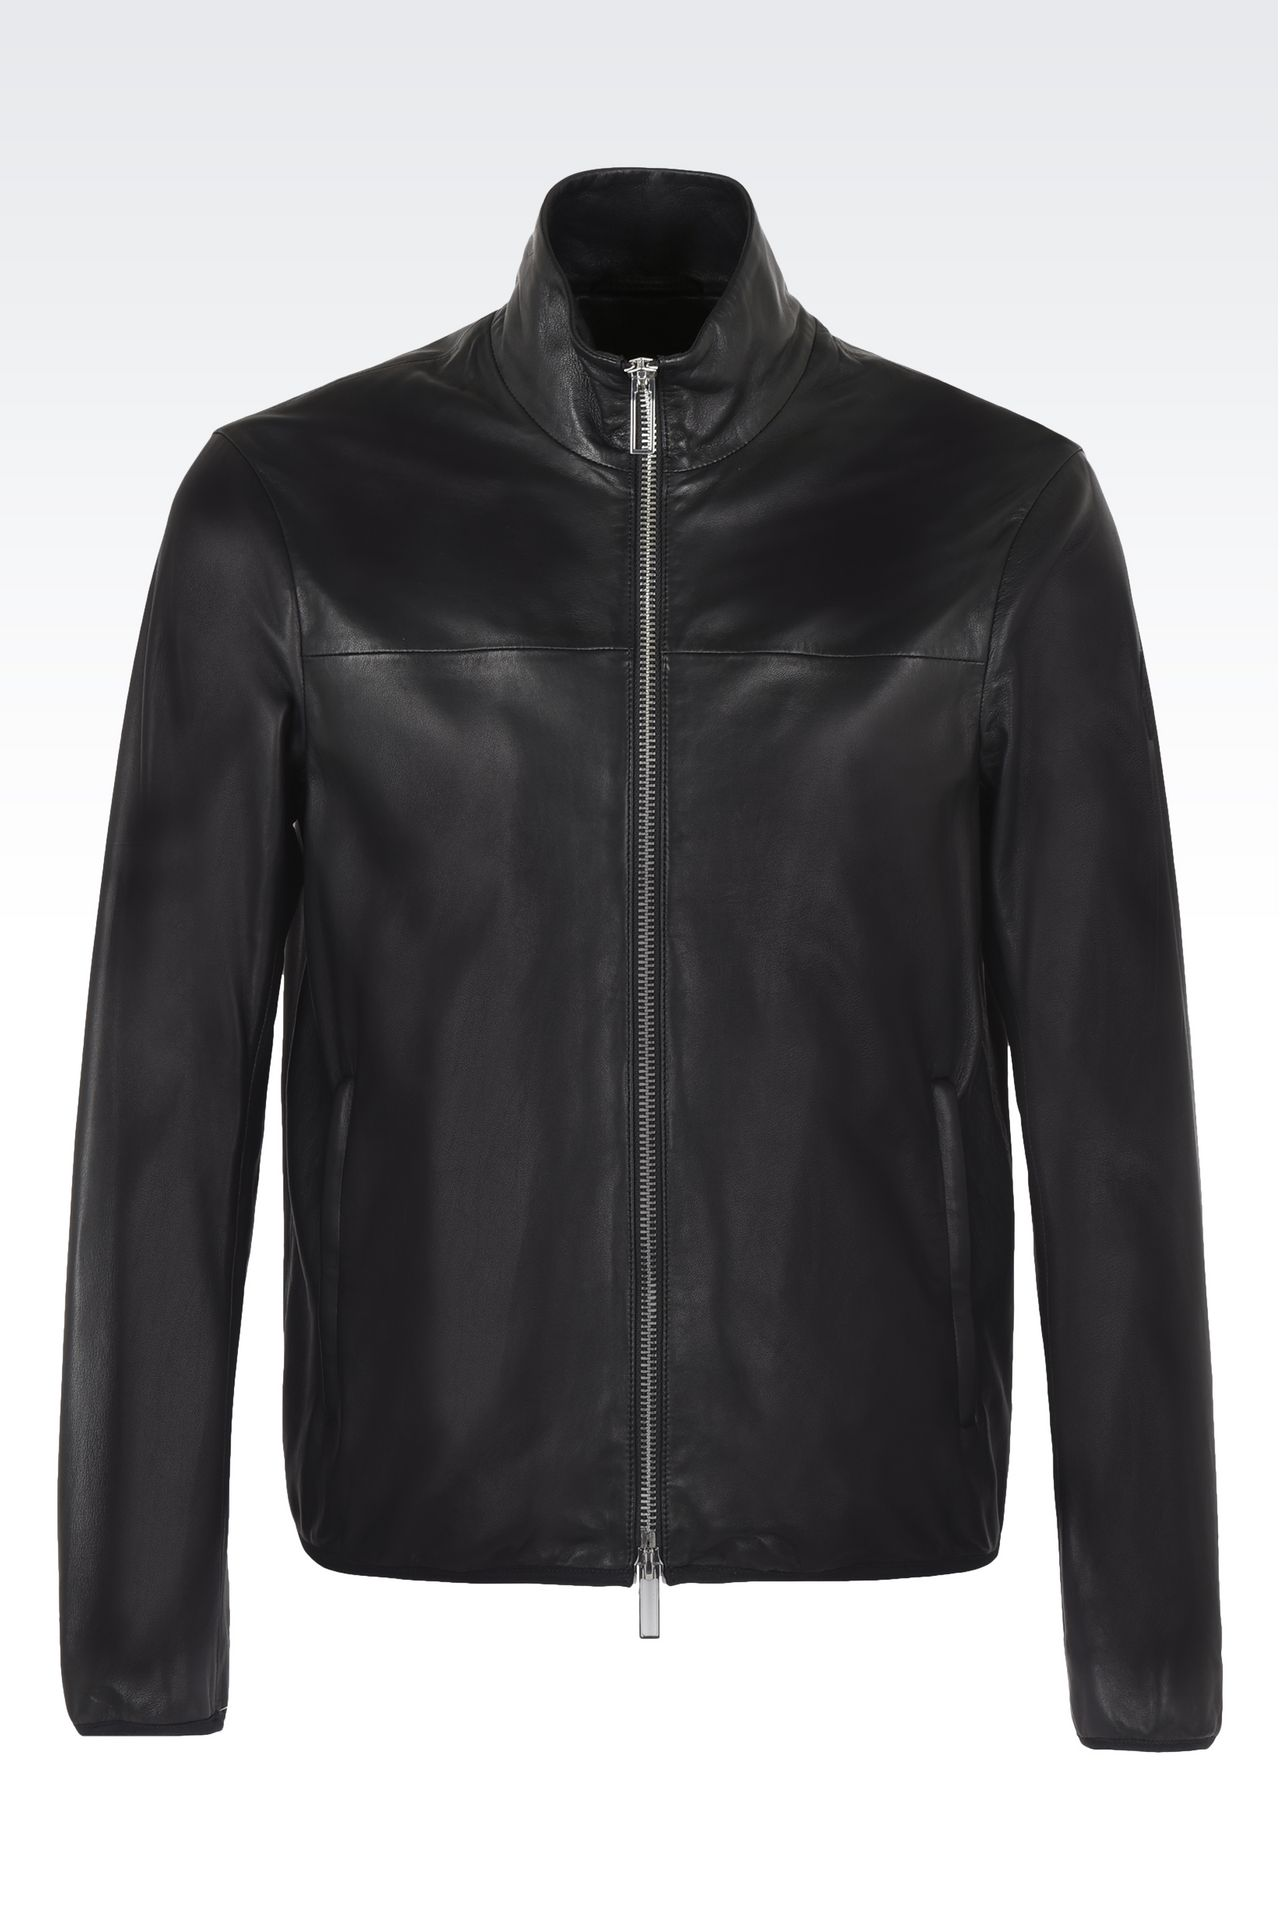 armani jackets outerwear: blouson jackets men by armani - 0 HBHNSKB